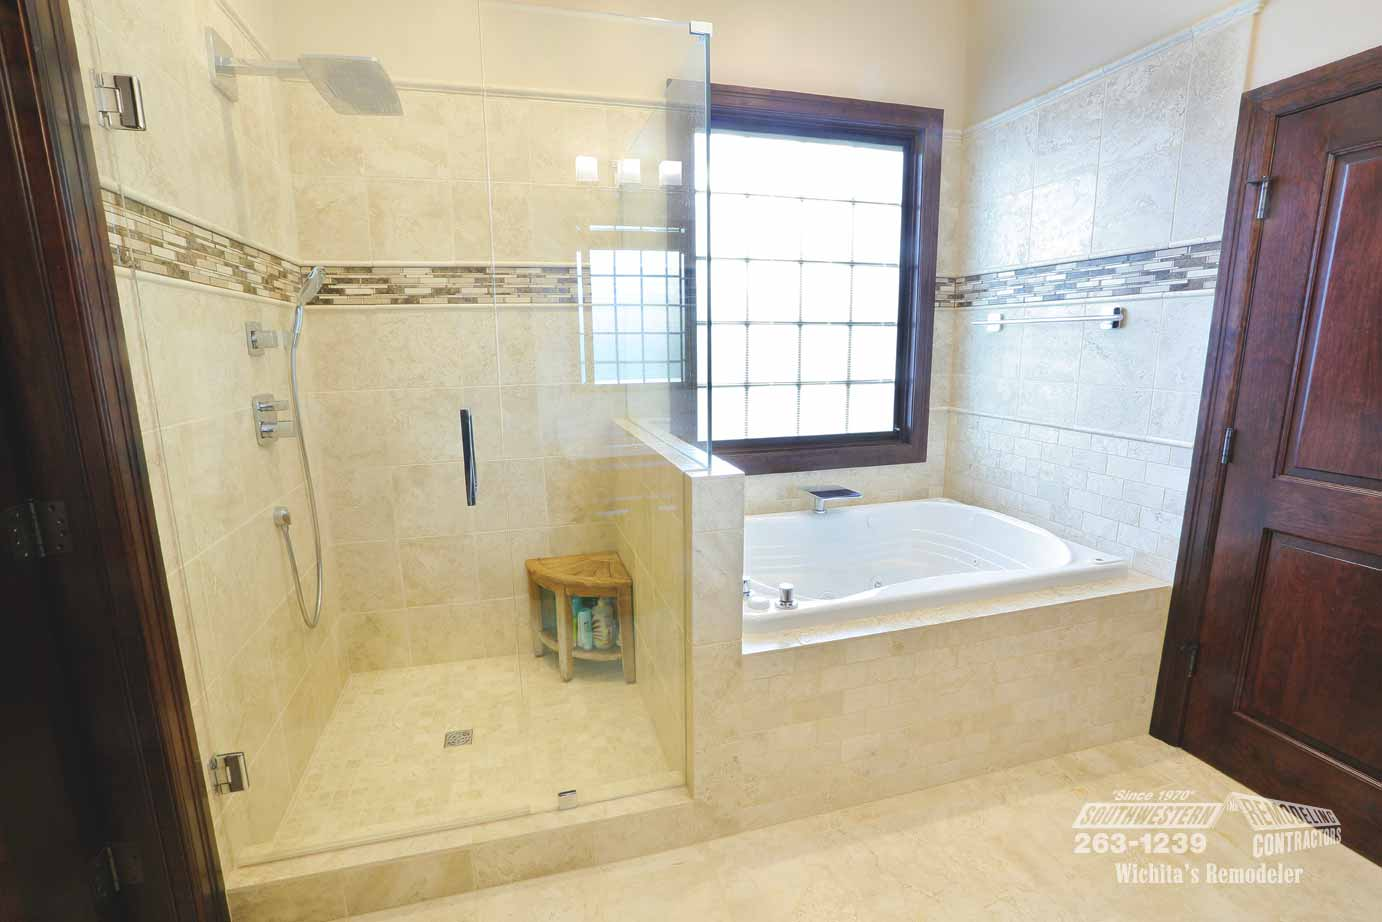 13. Bathroom Remodeling Wichita Home Remodeler